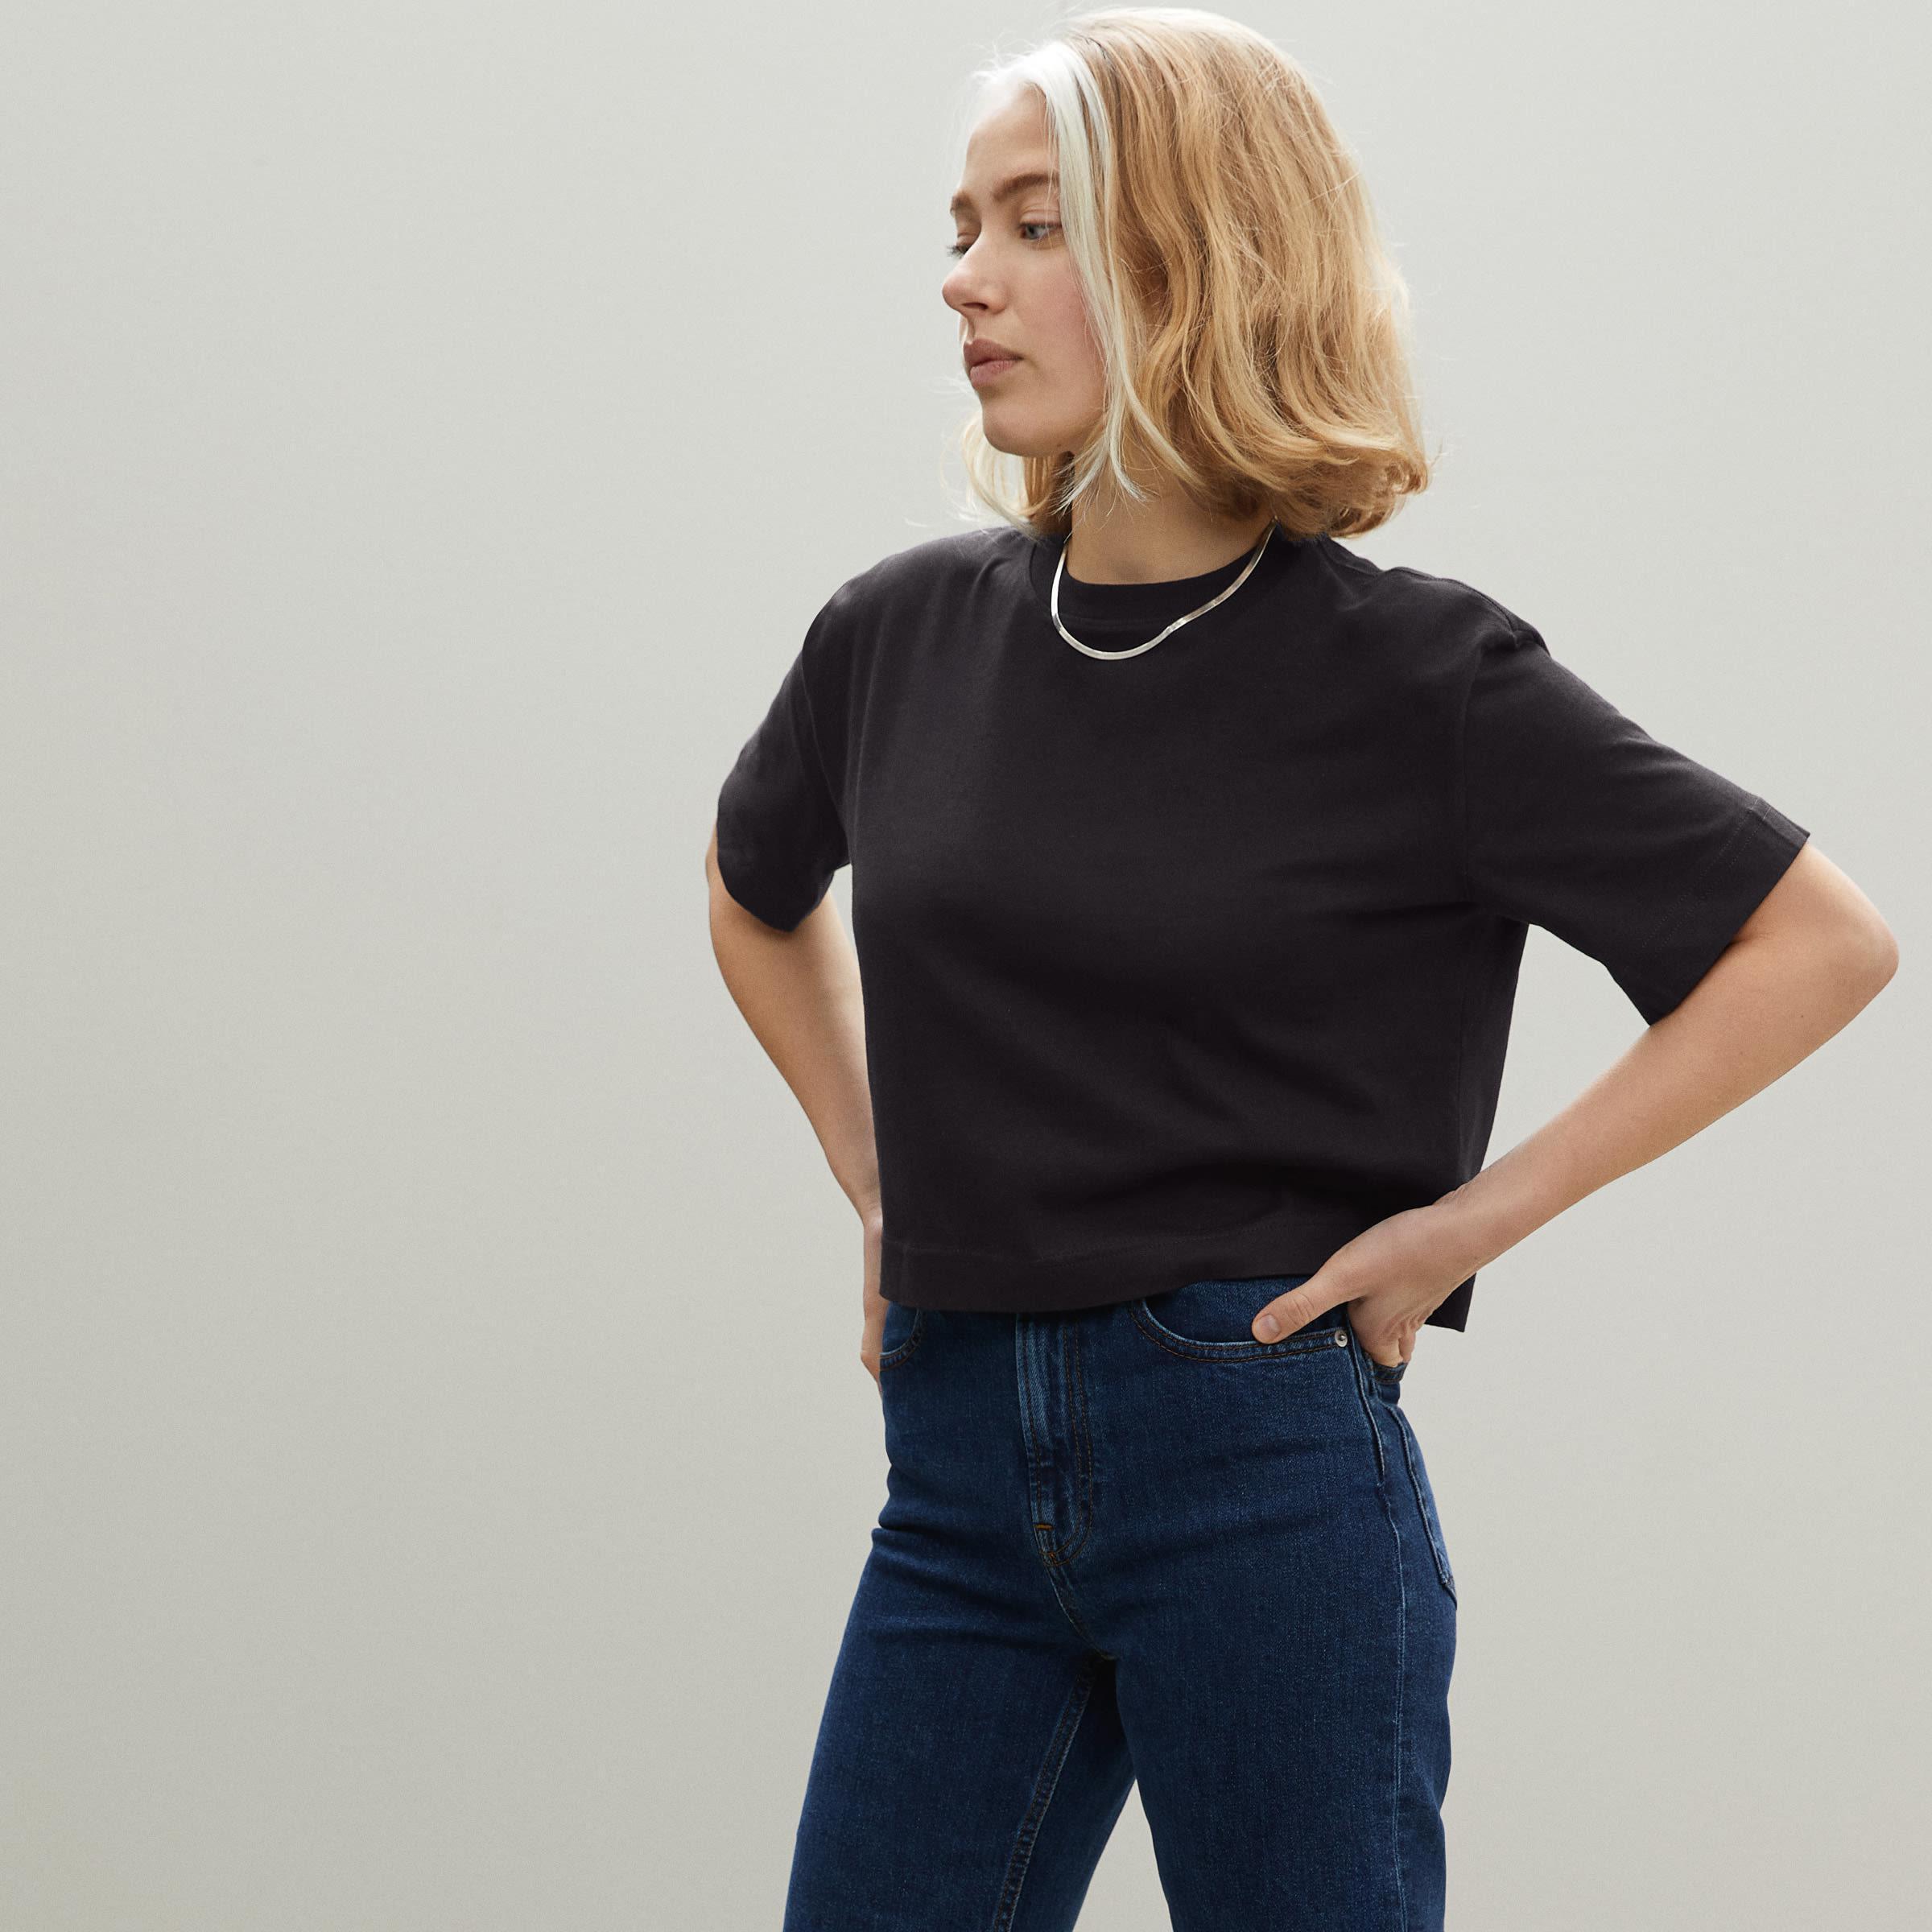 The Organic Cotton Cropped Tee